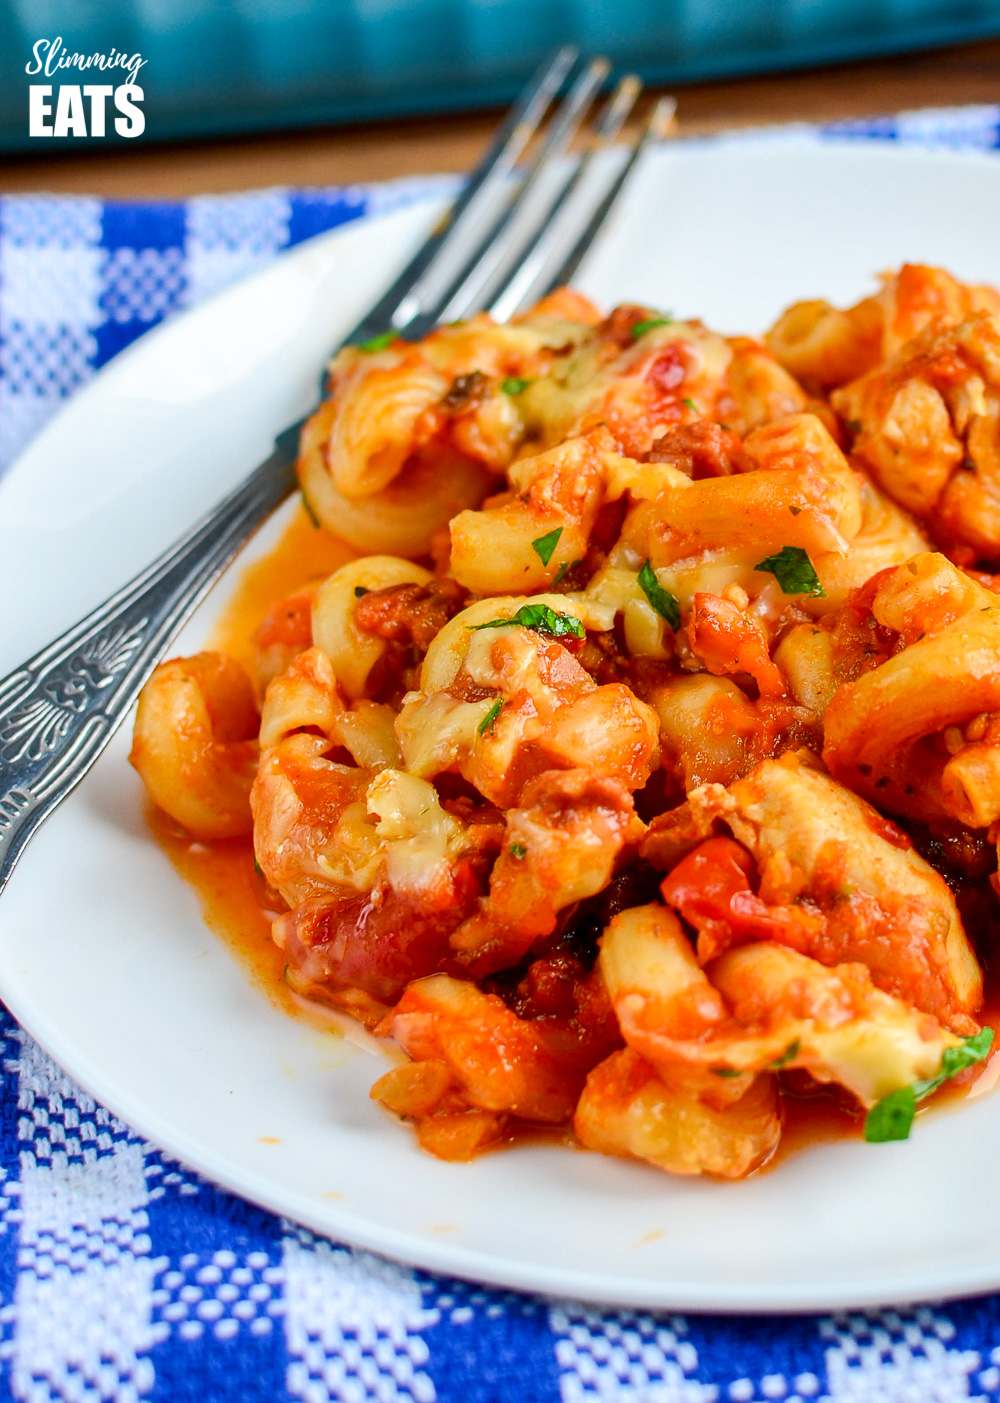 chicken bacon and tomato pasta bake on white plate with fork